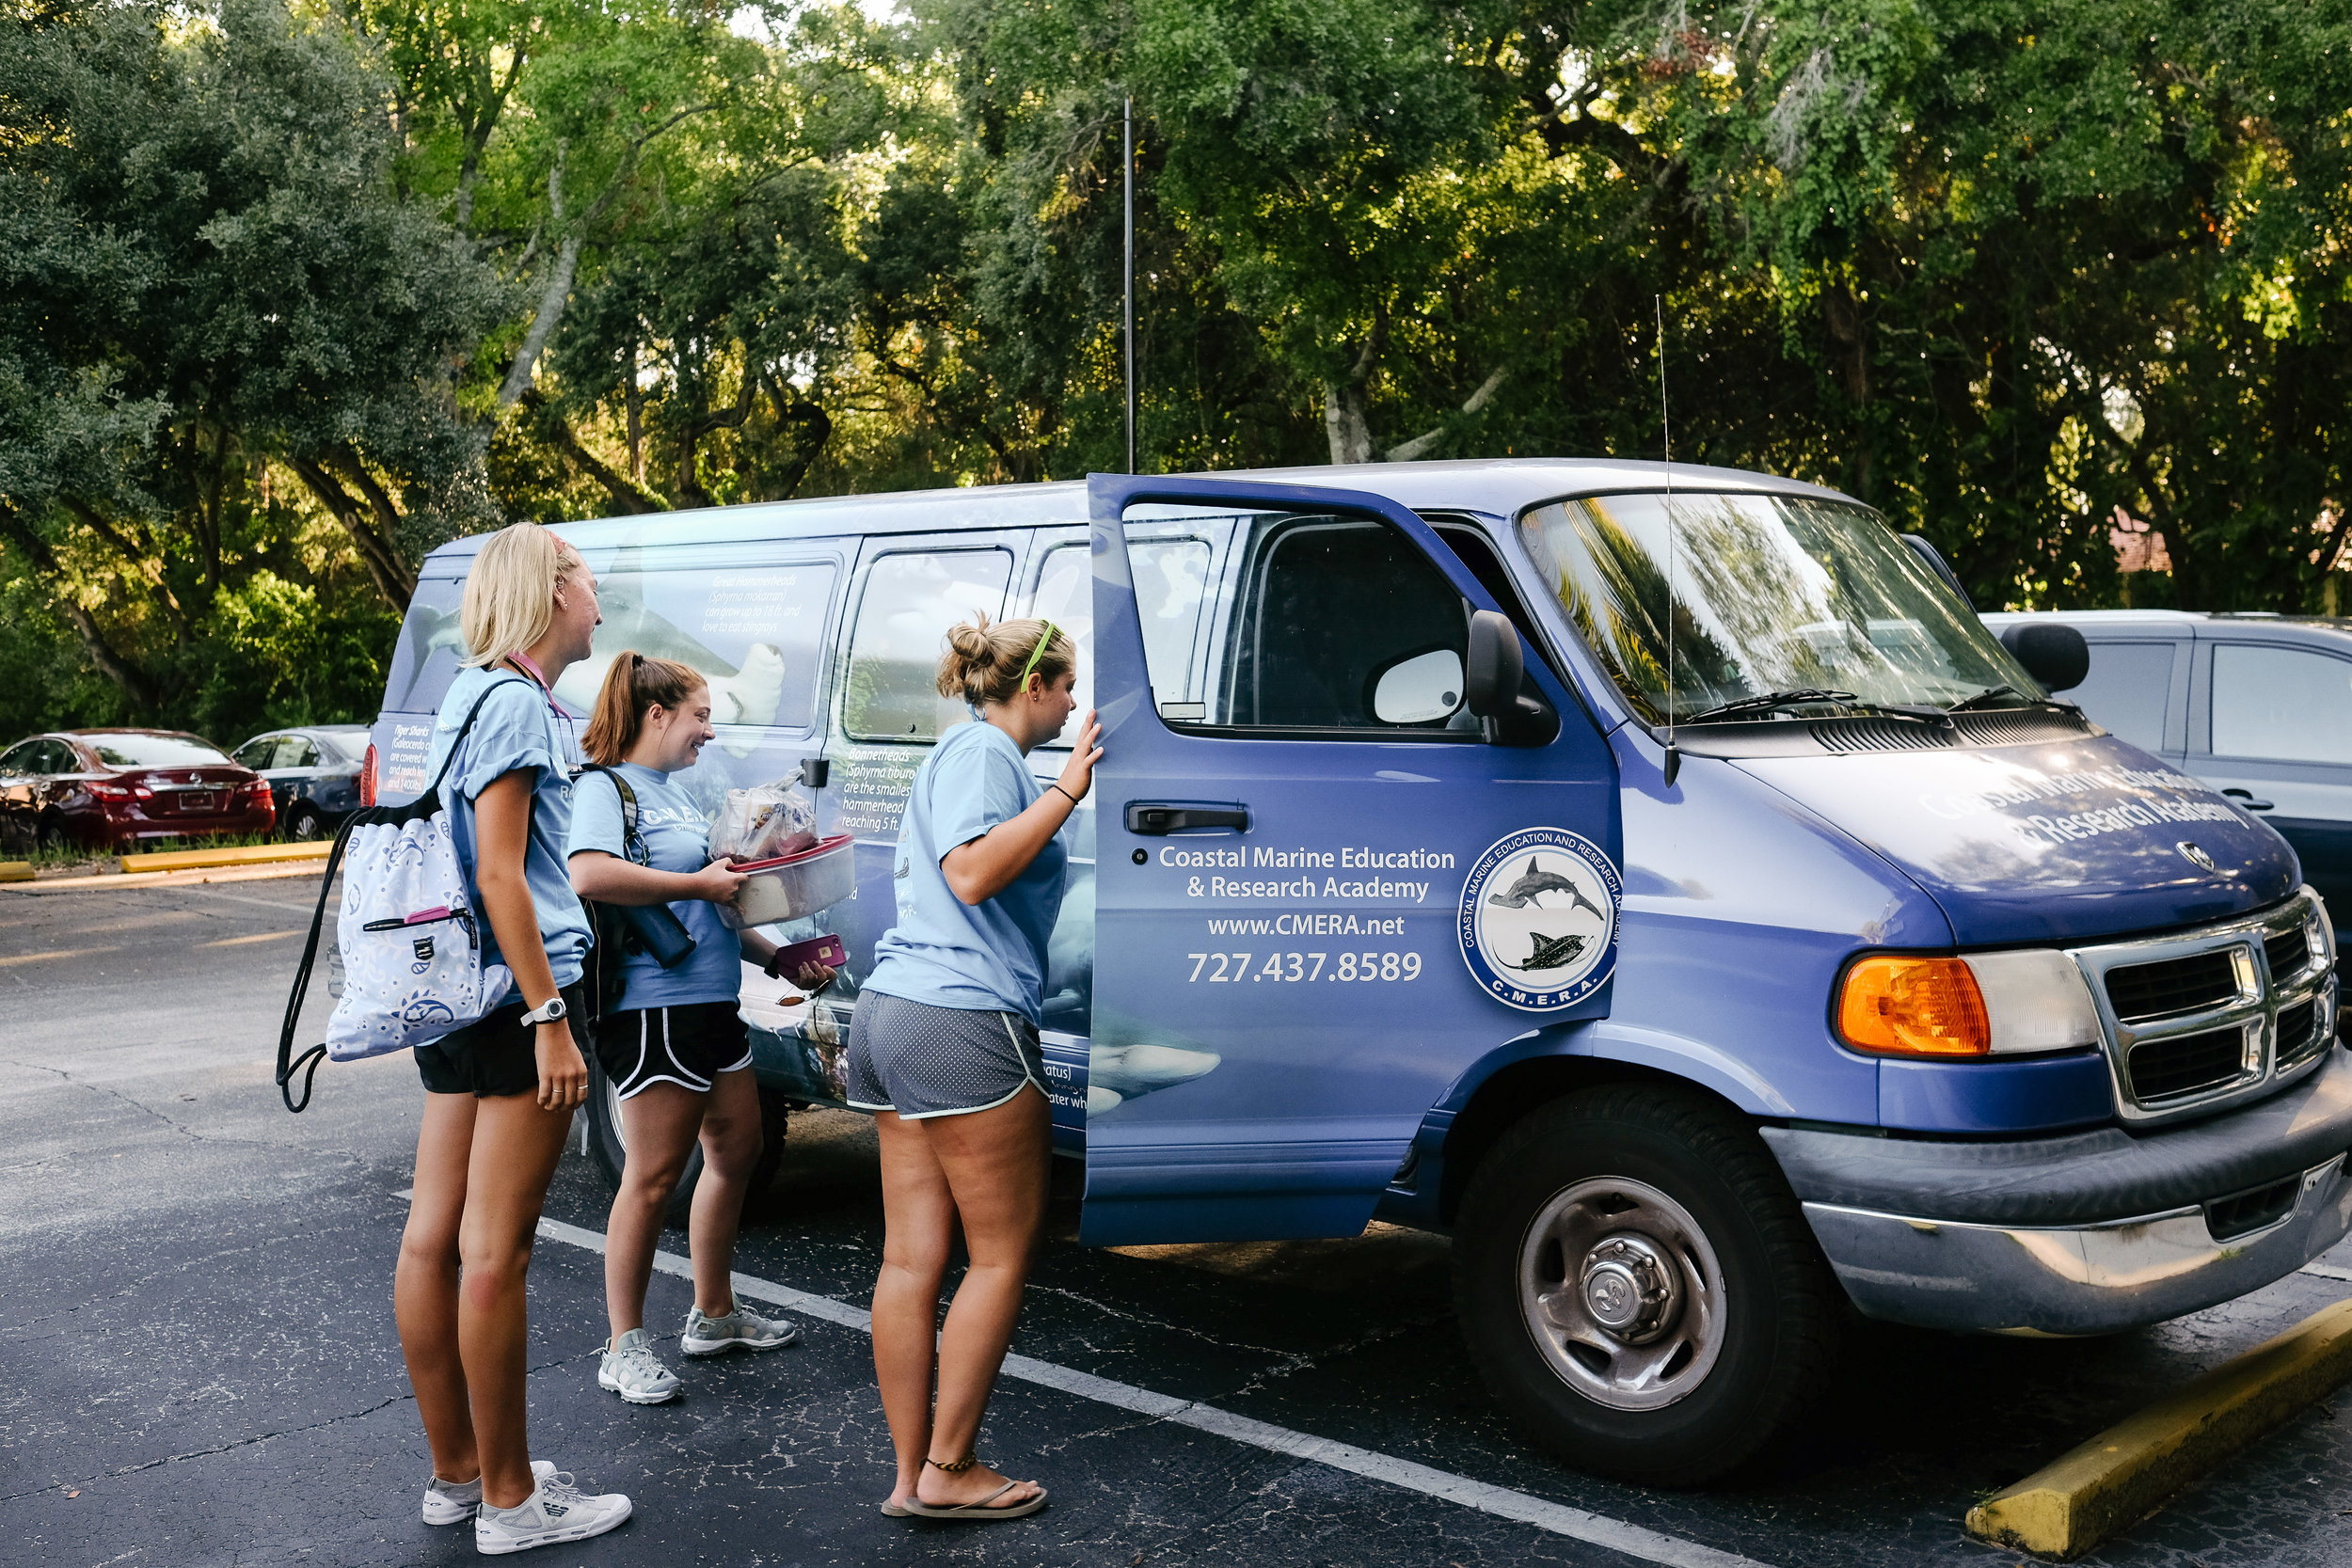 When their morning class is over, CMERA students pile into the van that will take them to the marina to start the second part of their day conducting shark and ray research.